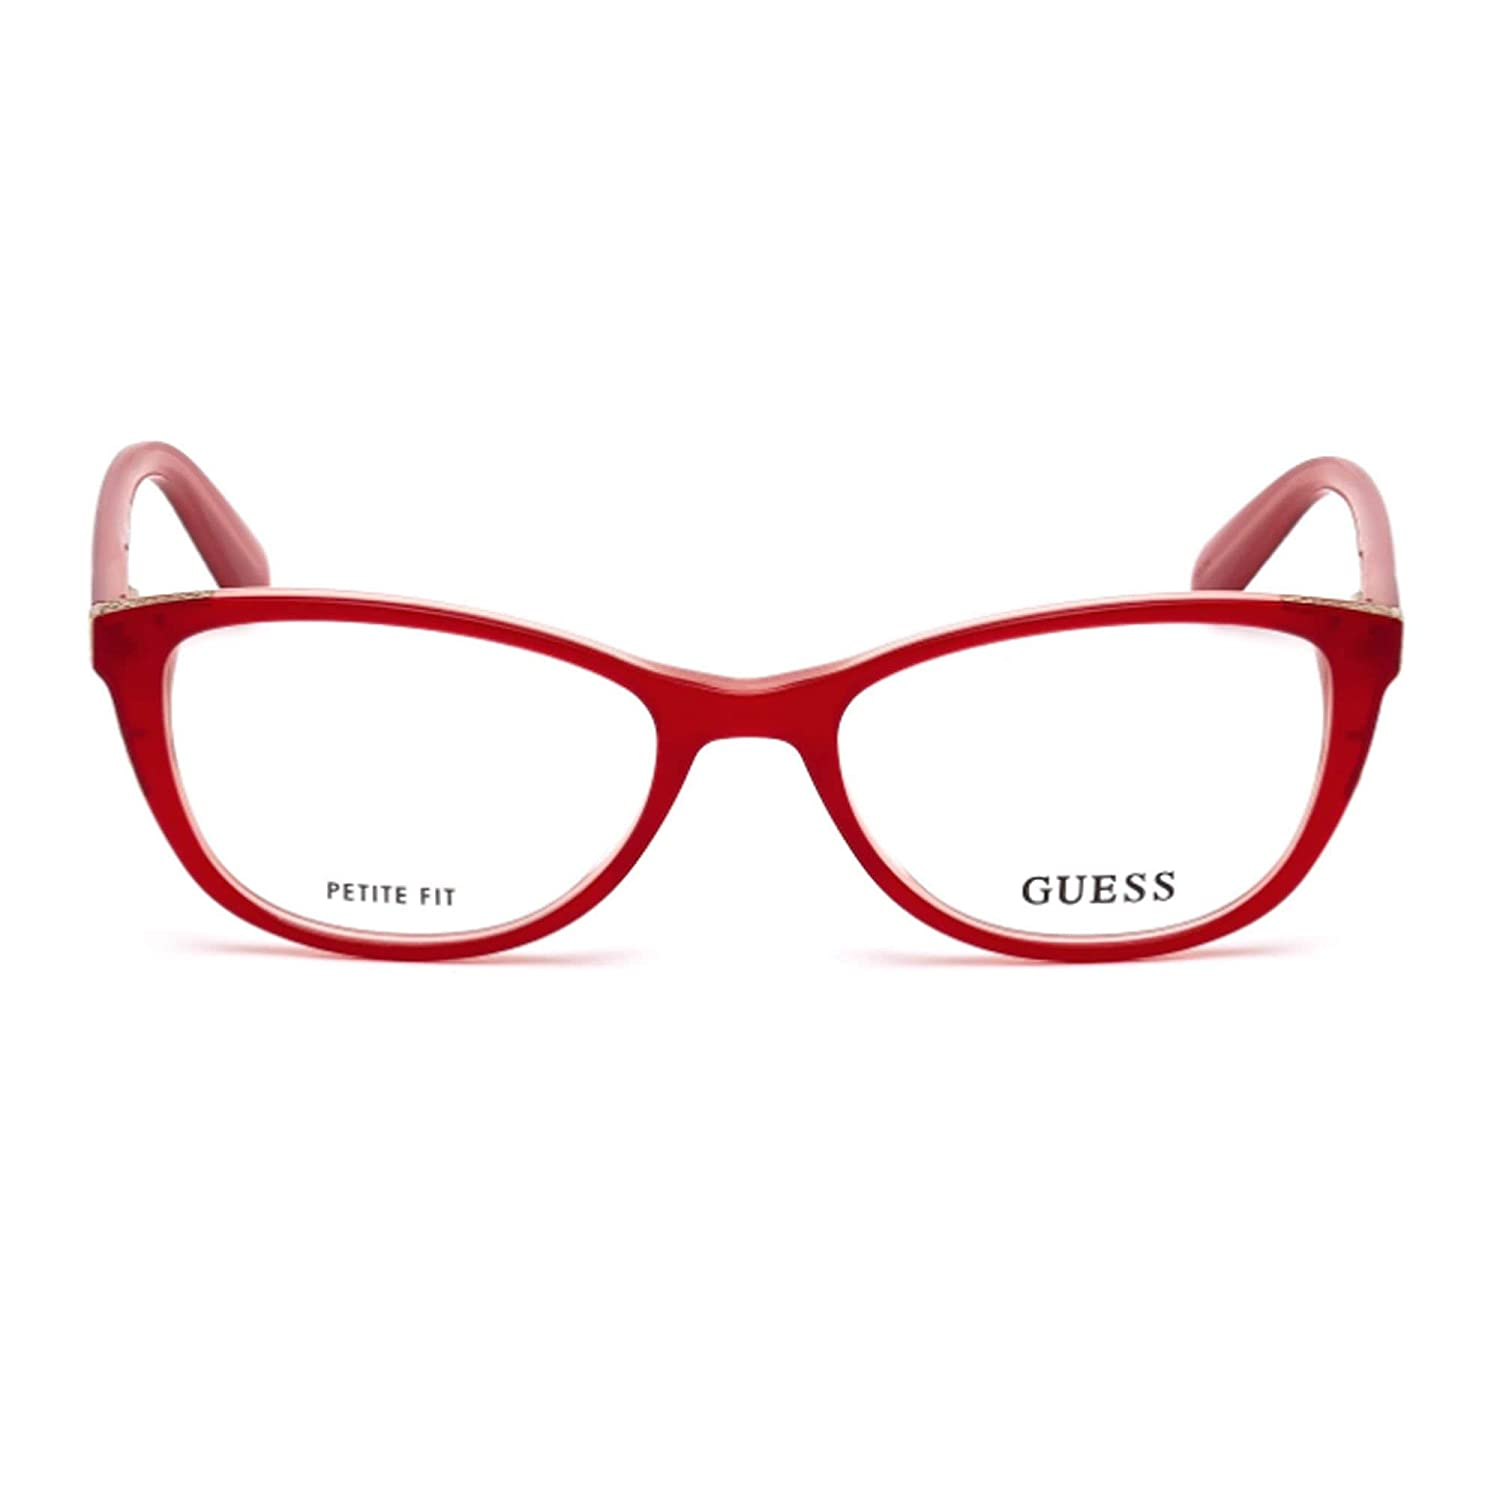 92dcb5143ed Optical frame Guess Acetate Red (GU2589 068) at Amazon Women s Clothing  store